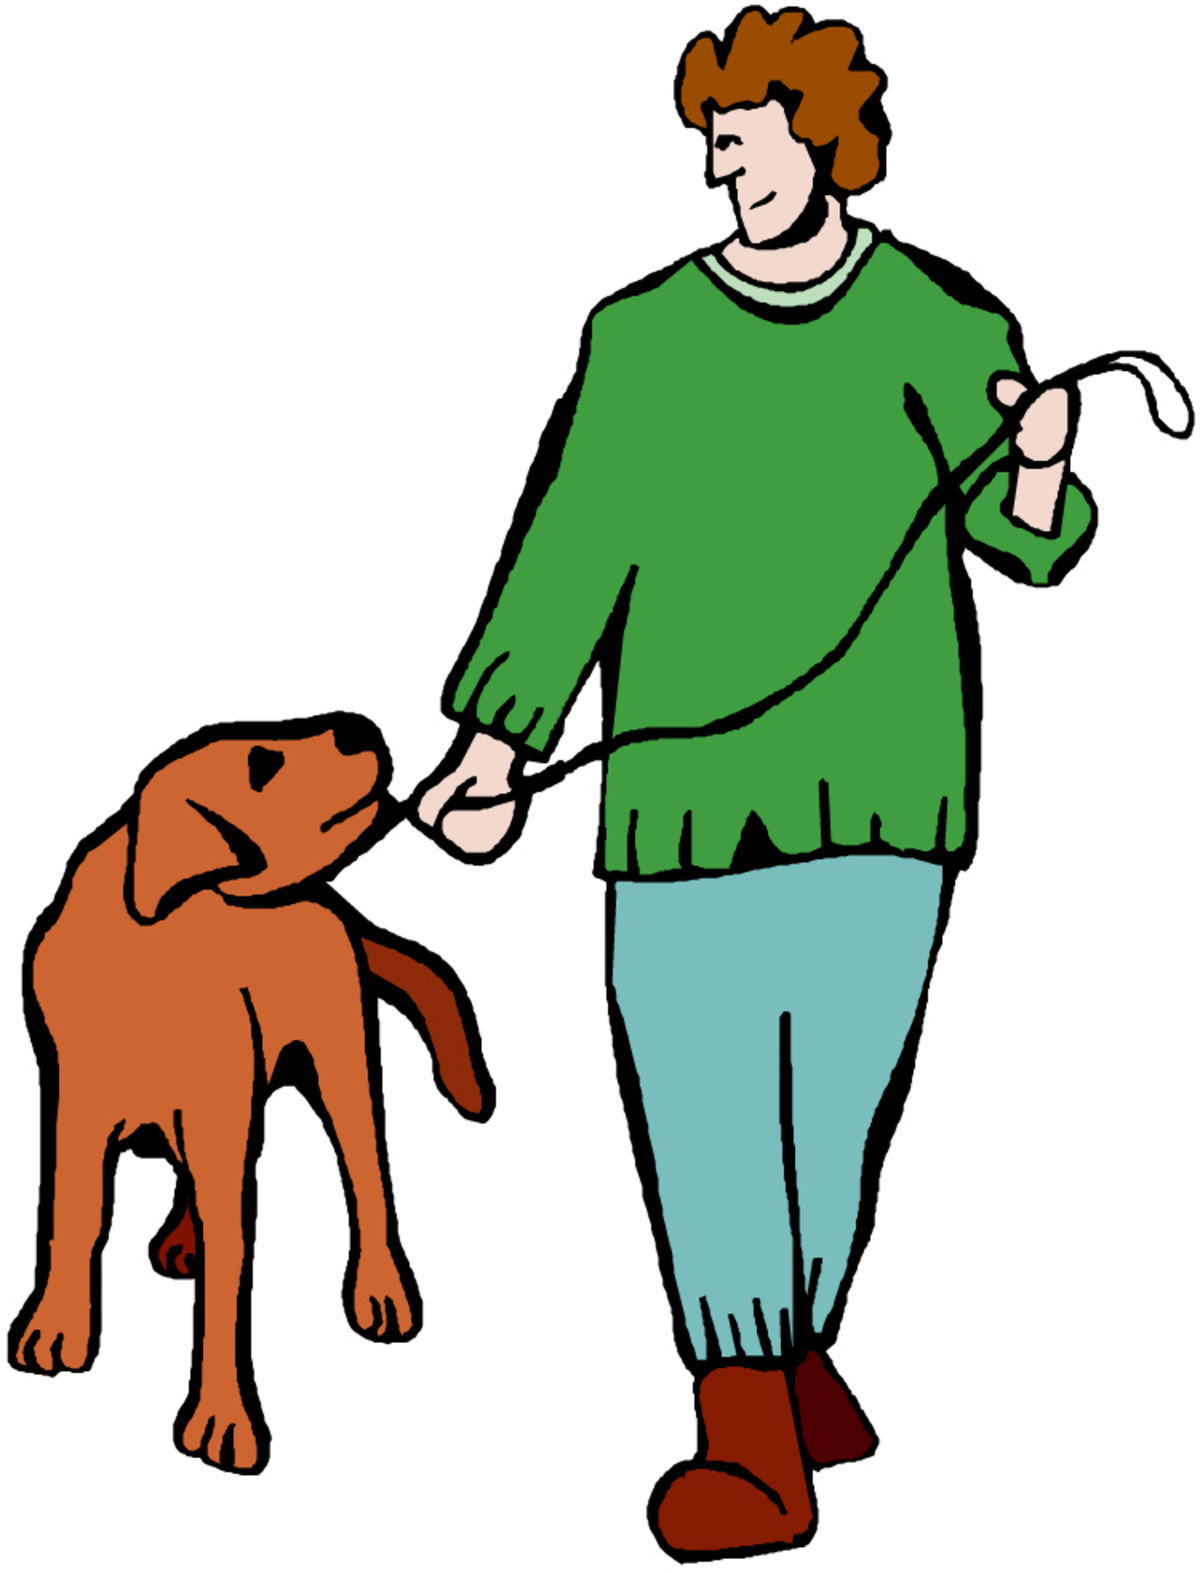 Your Dog Watches You and Interprets Your Behavior | Psychology Today